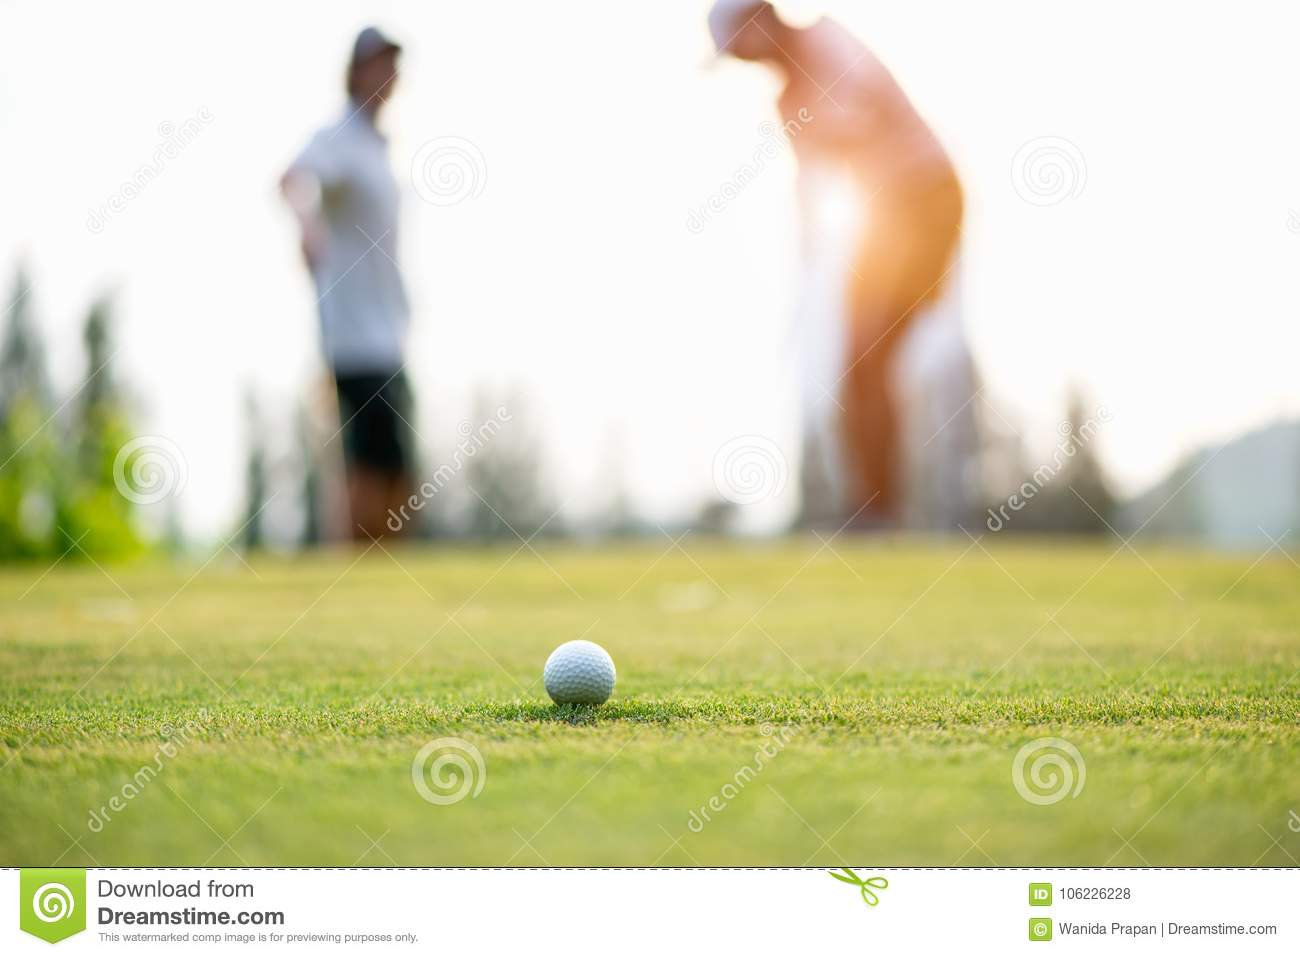 Golf ball approach to the hold on the green. Couple golf player putting golf ball in the background.